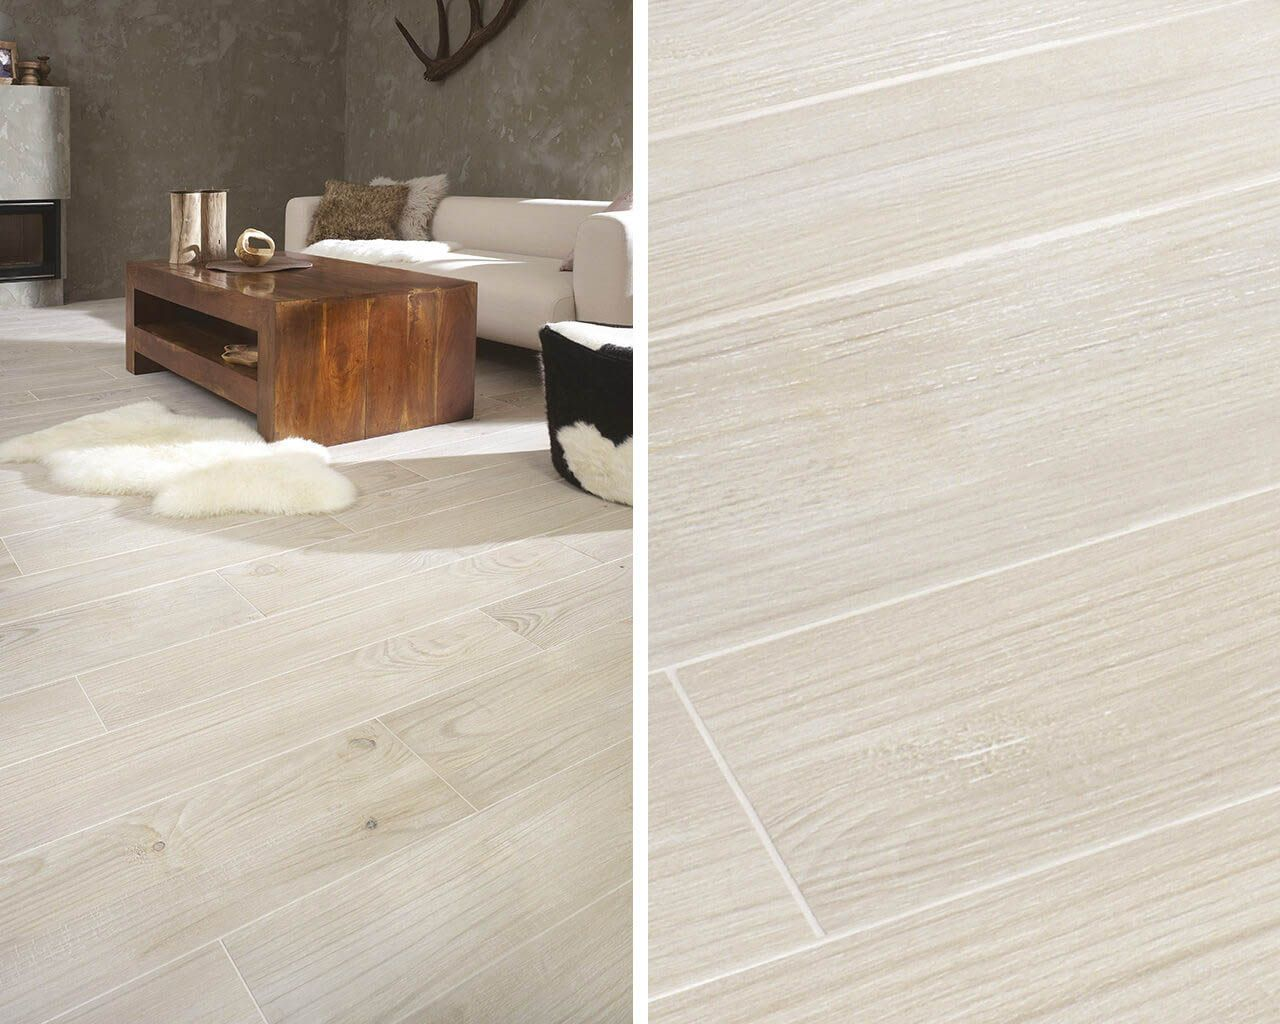 Thorno The Beauty Of Wood Captured In The Ceramic Floor